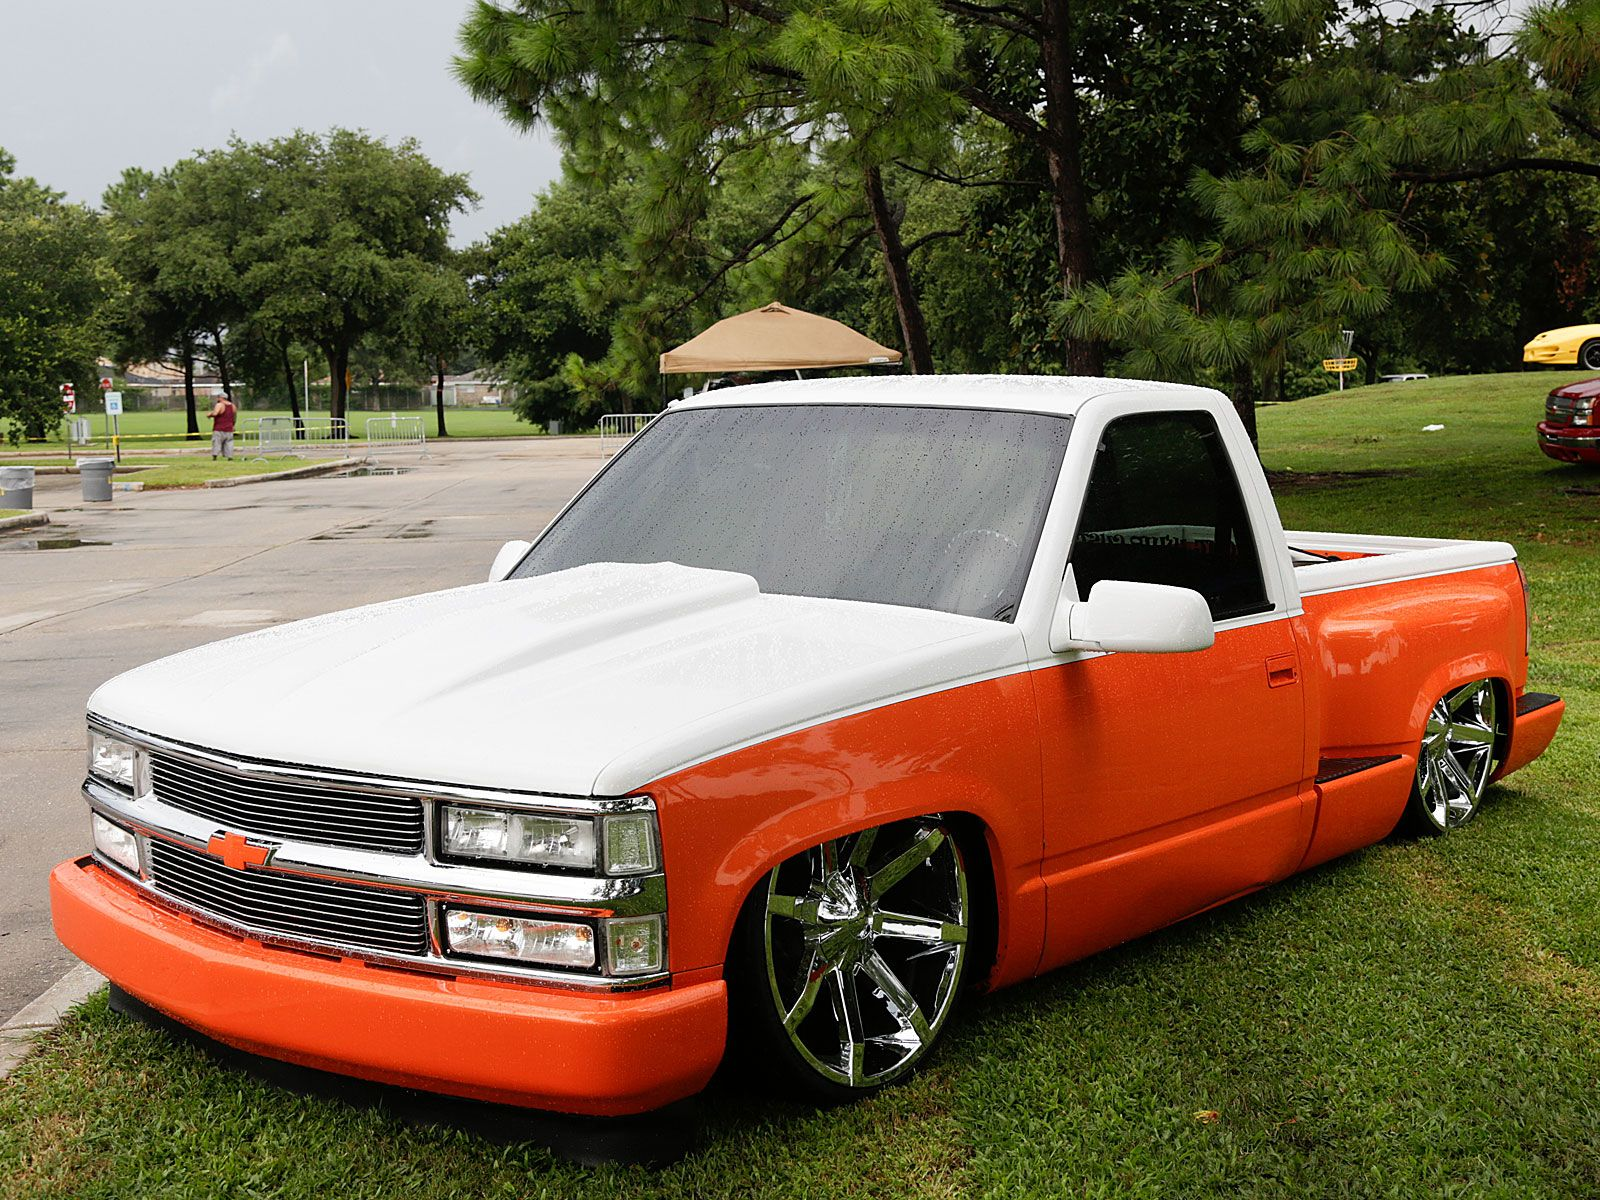 medium resolution of 1988 chevy pickup truck paint schemes 2008 ford e350 trailer wiring harness in addition bike tire parts